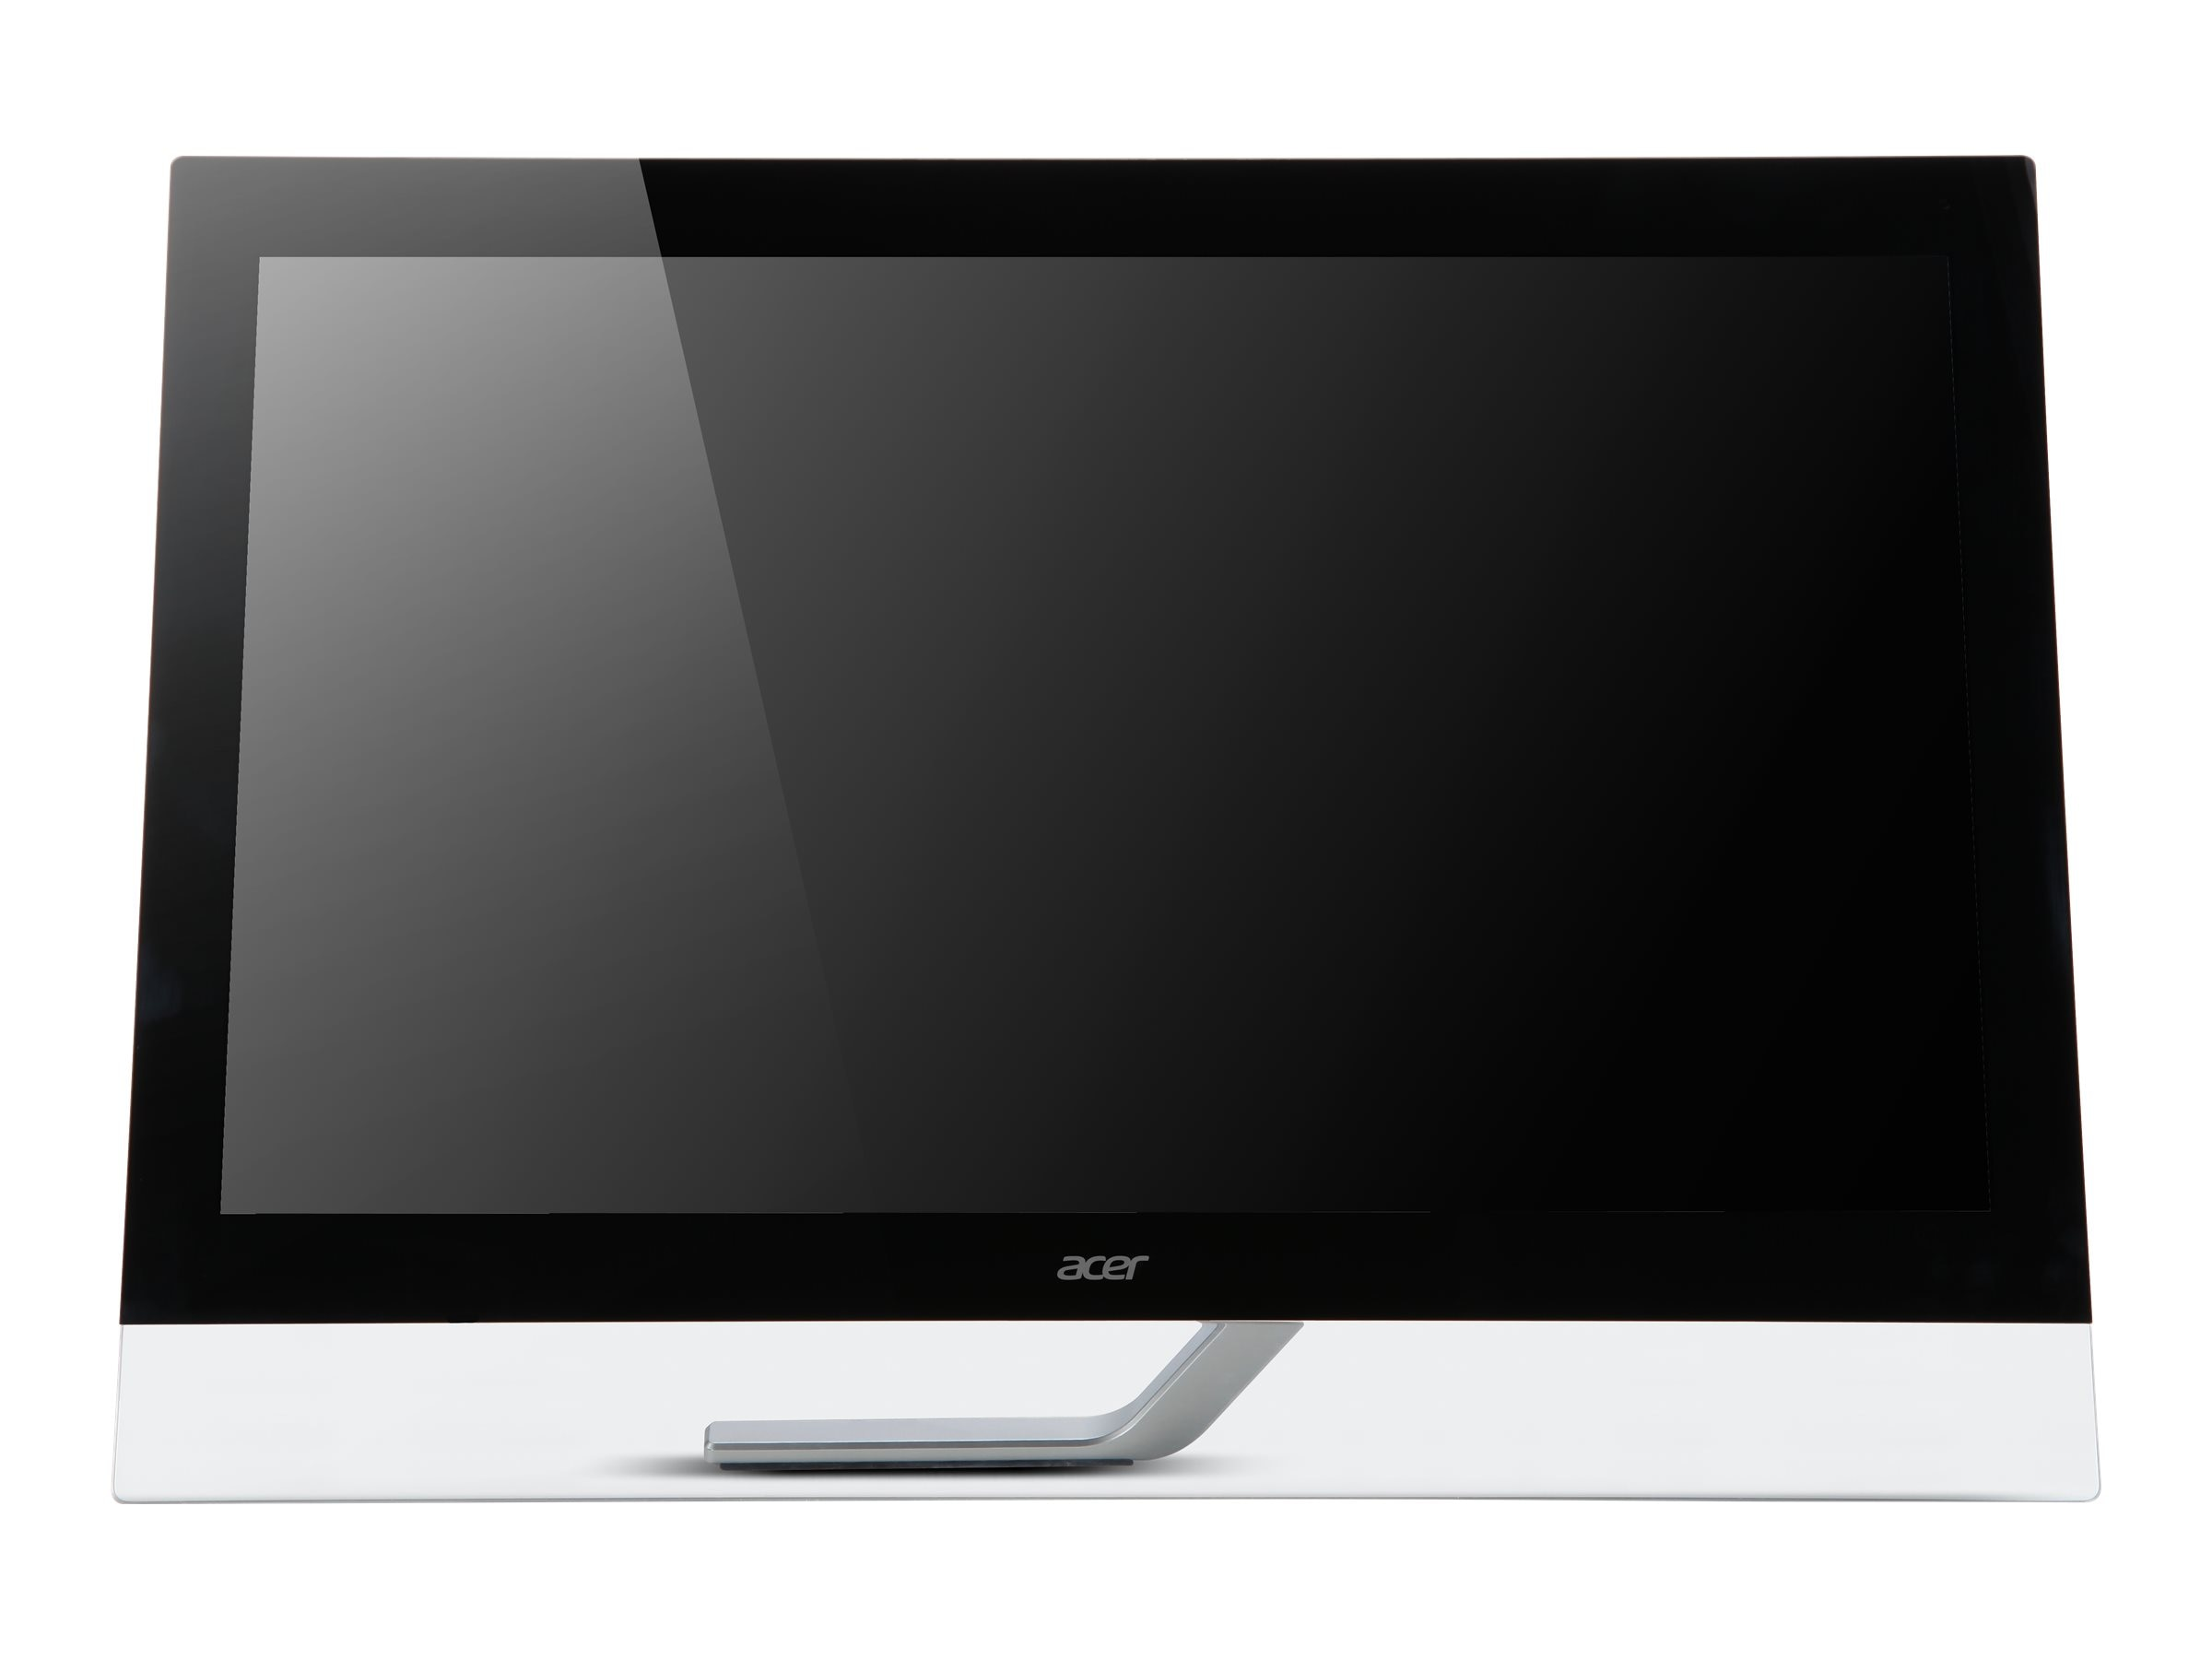 Acer 27 T272HL bmjjz Full HD Touchscreen Monitor, Black